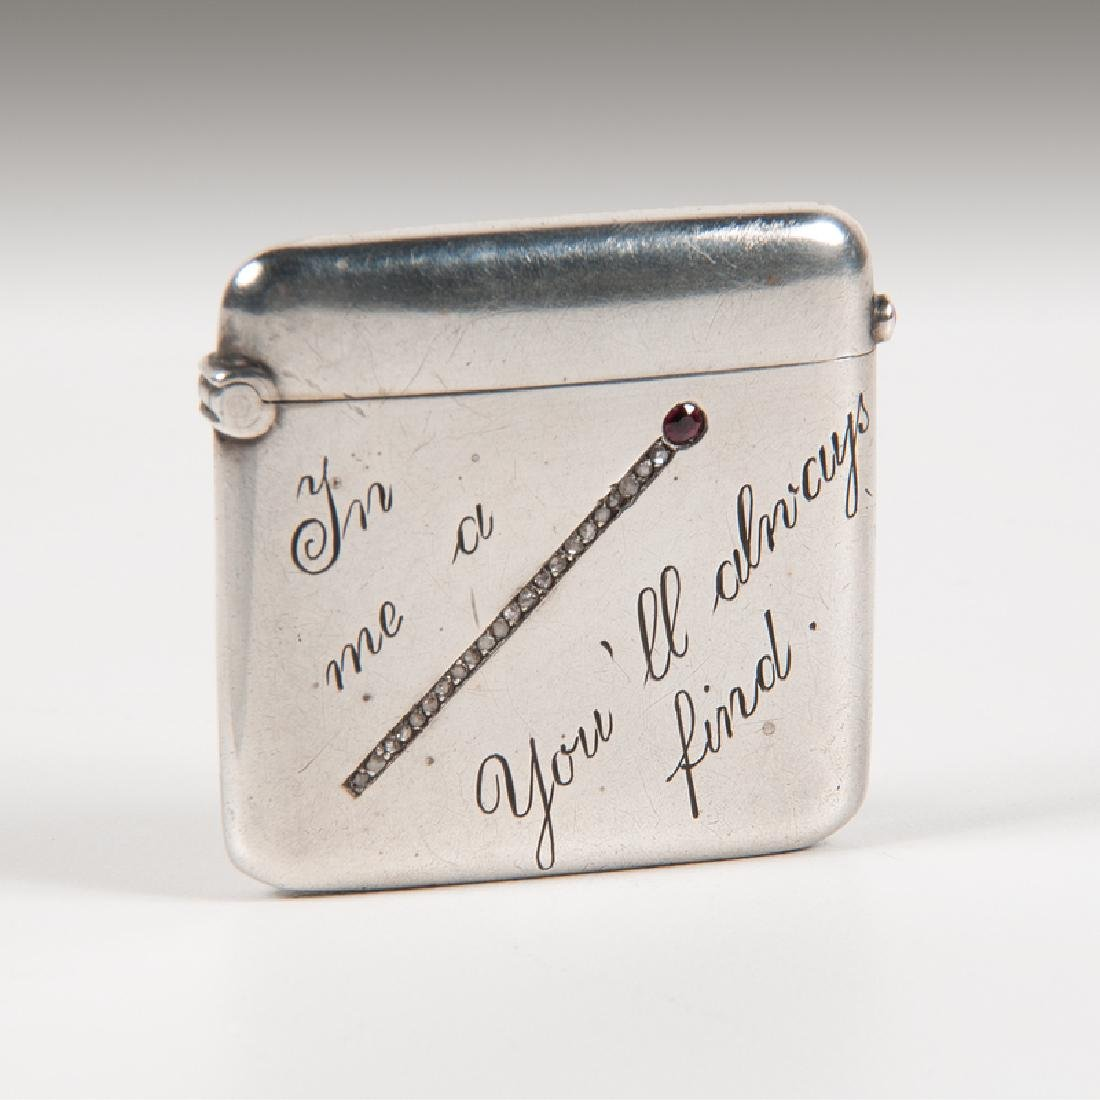 .900 Silver Match Safe with Diamonds and Ruby